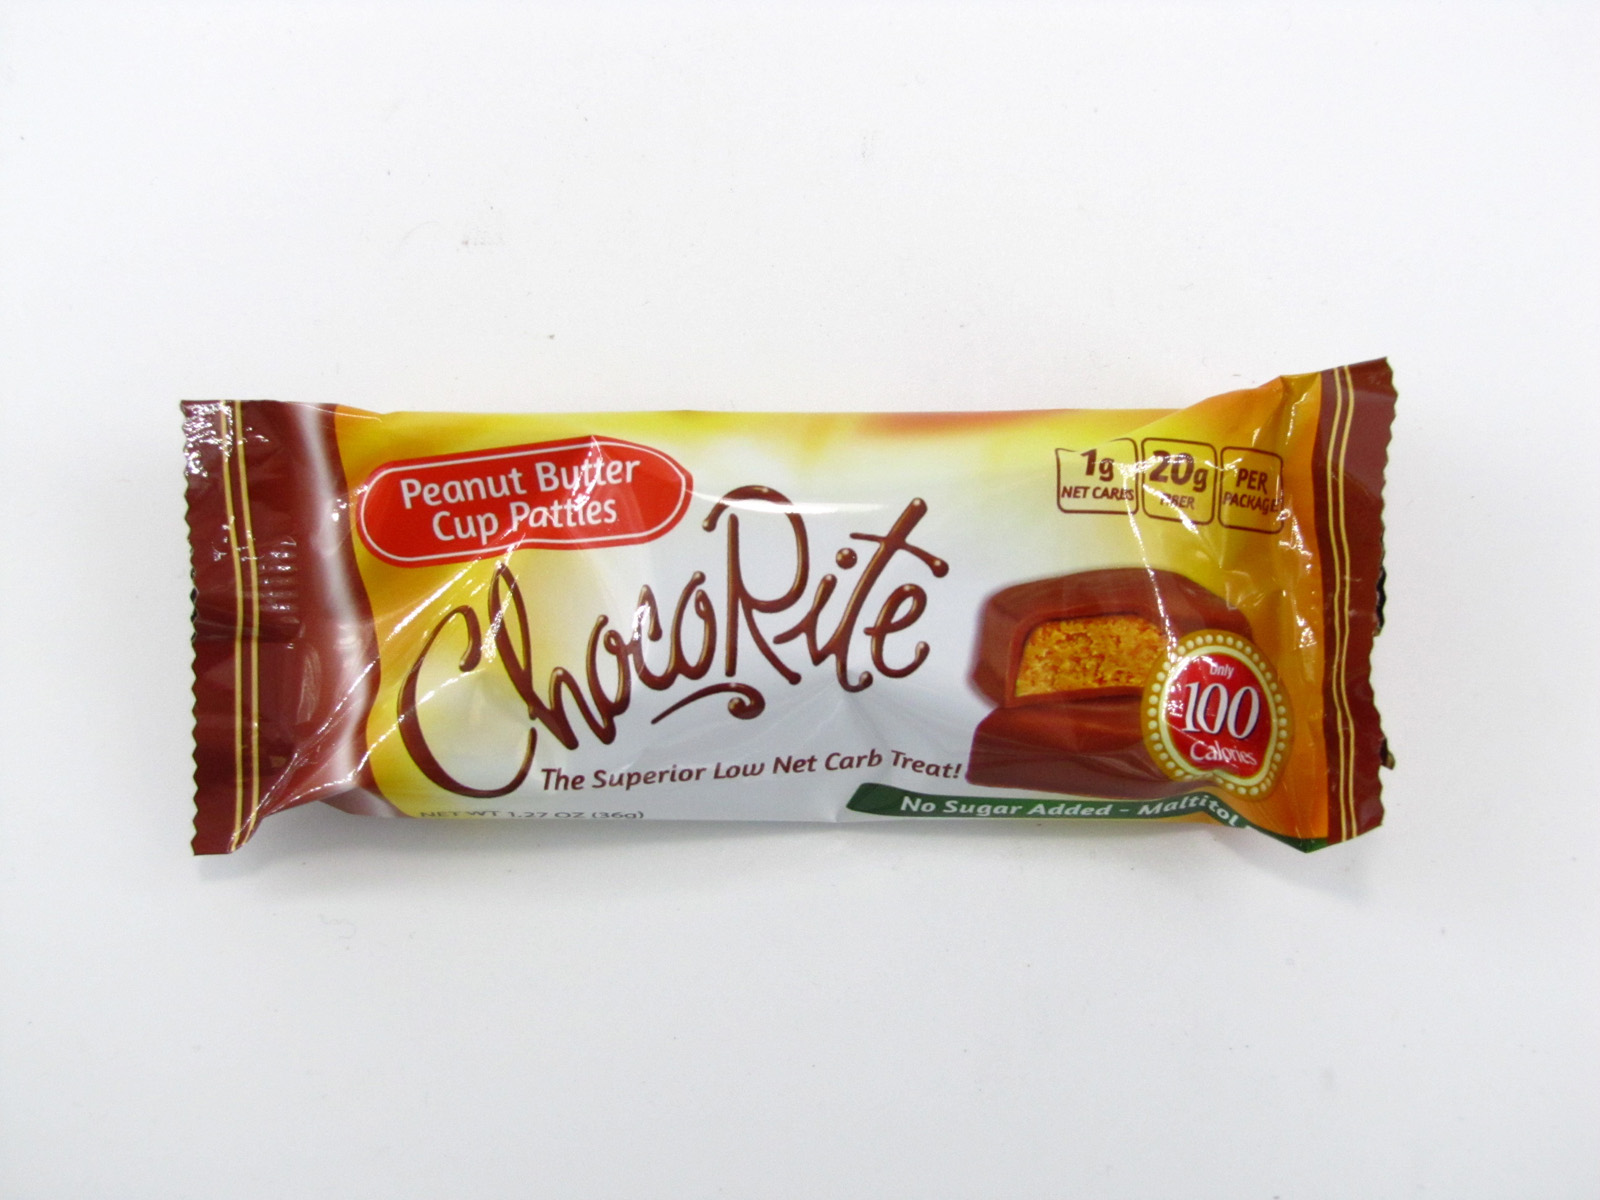 Chocorite Bar (36g) - Peanut Butter Cup Patties - front view